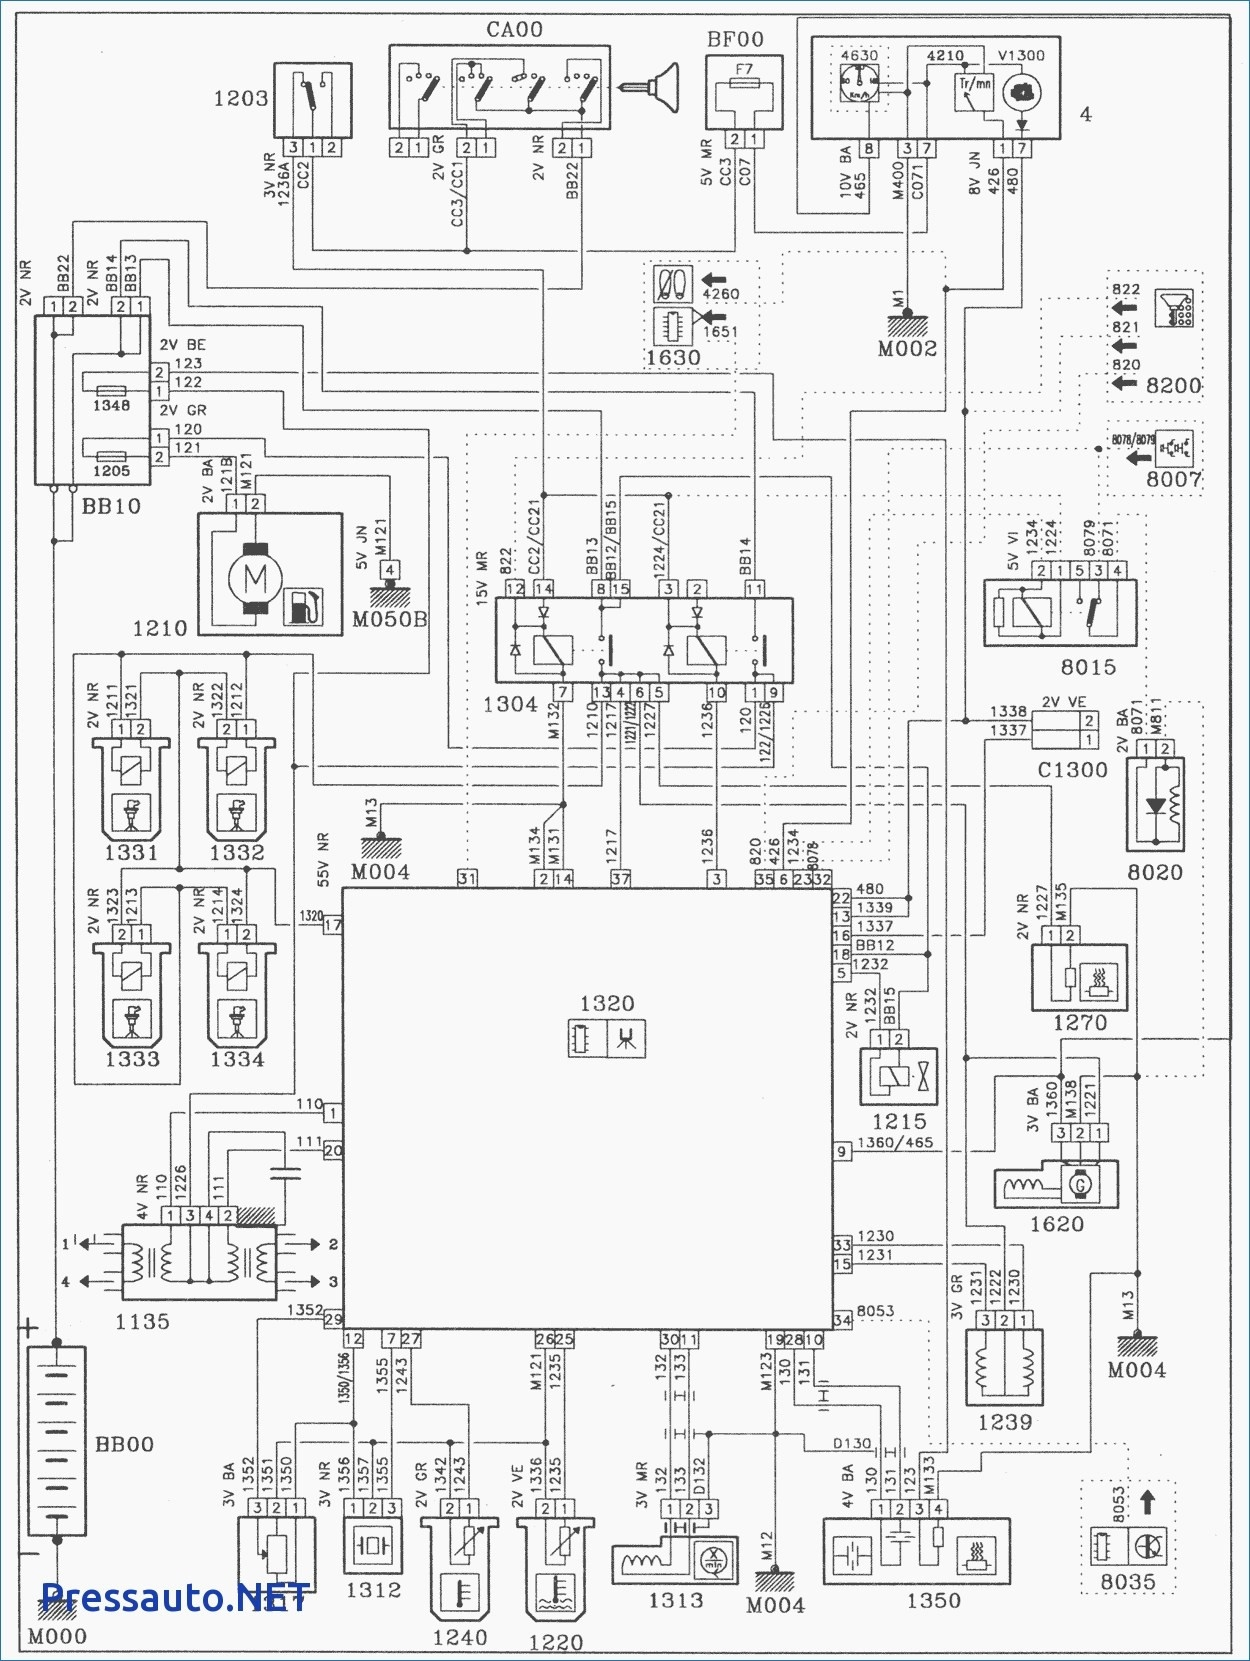 DIAGRAM] Toyota Condor Wiring Diagram FULL Version HD Quality Wiring Diagram  - 1PTBWIRING1.LALIBRAIRIEDELOUVIERS.FR